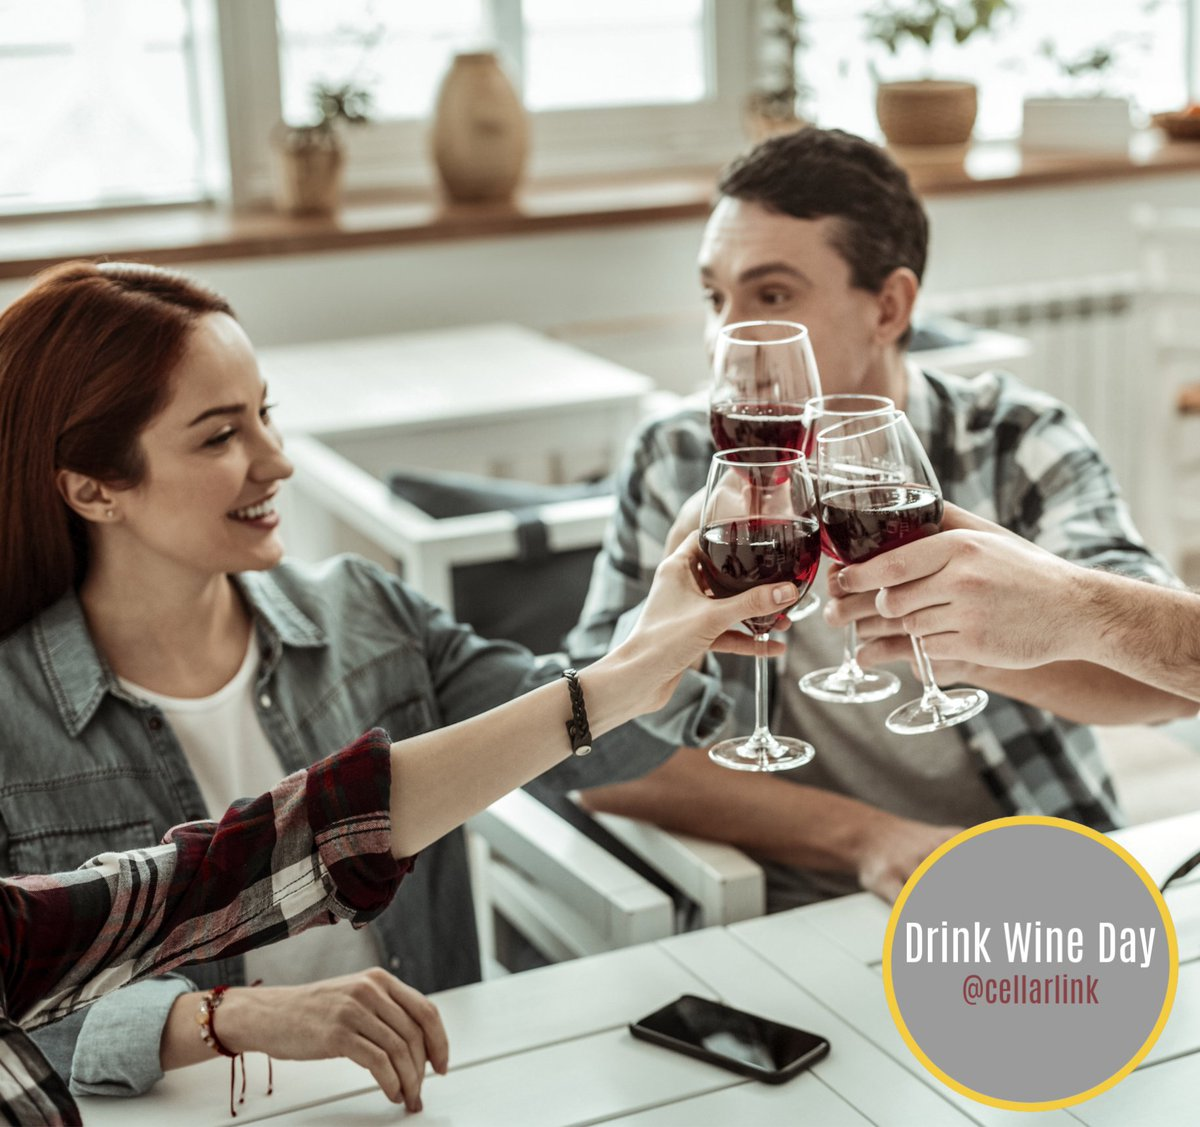 Happy Drink Wine Day!  Globally, it is celebrated annually every February 18 and its purpose is to spread the love and various health benefits of drinking wine.  Cheers to a healthy life! 🍷 #cellarlink #winetip #winelover #winemarketplace #winestorage #australia #hongkong #uk